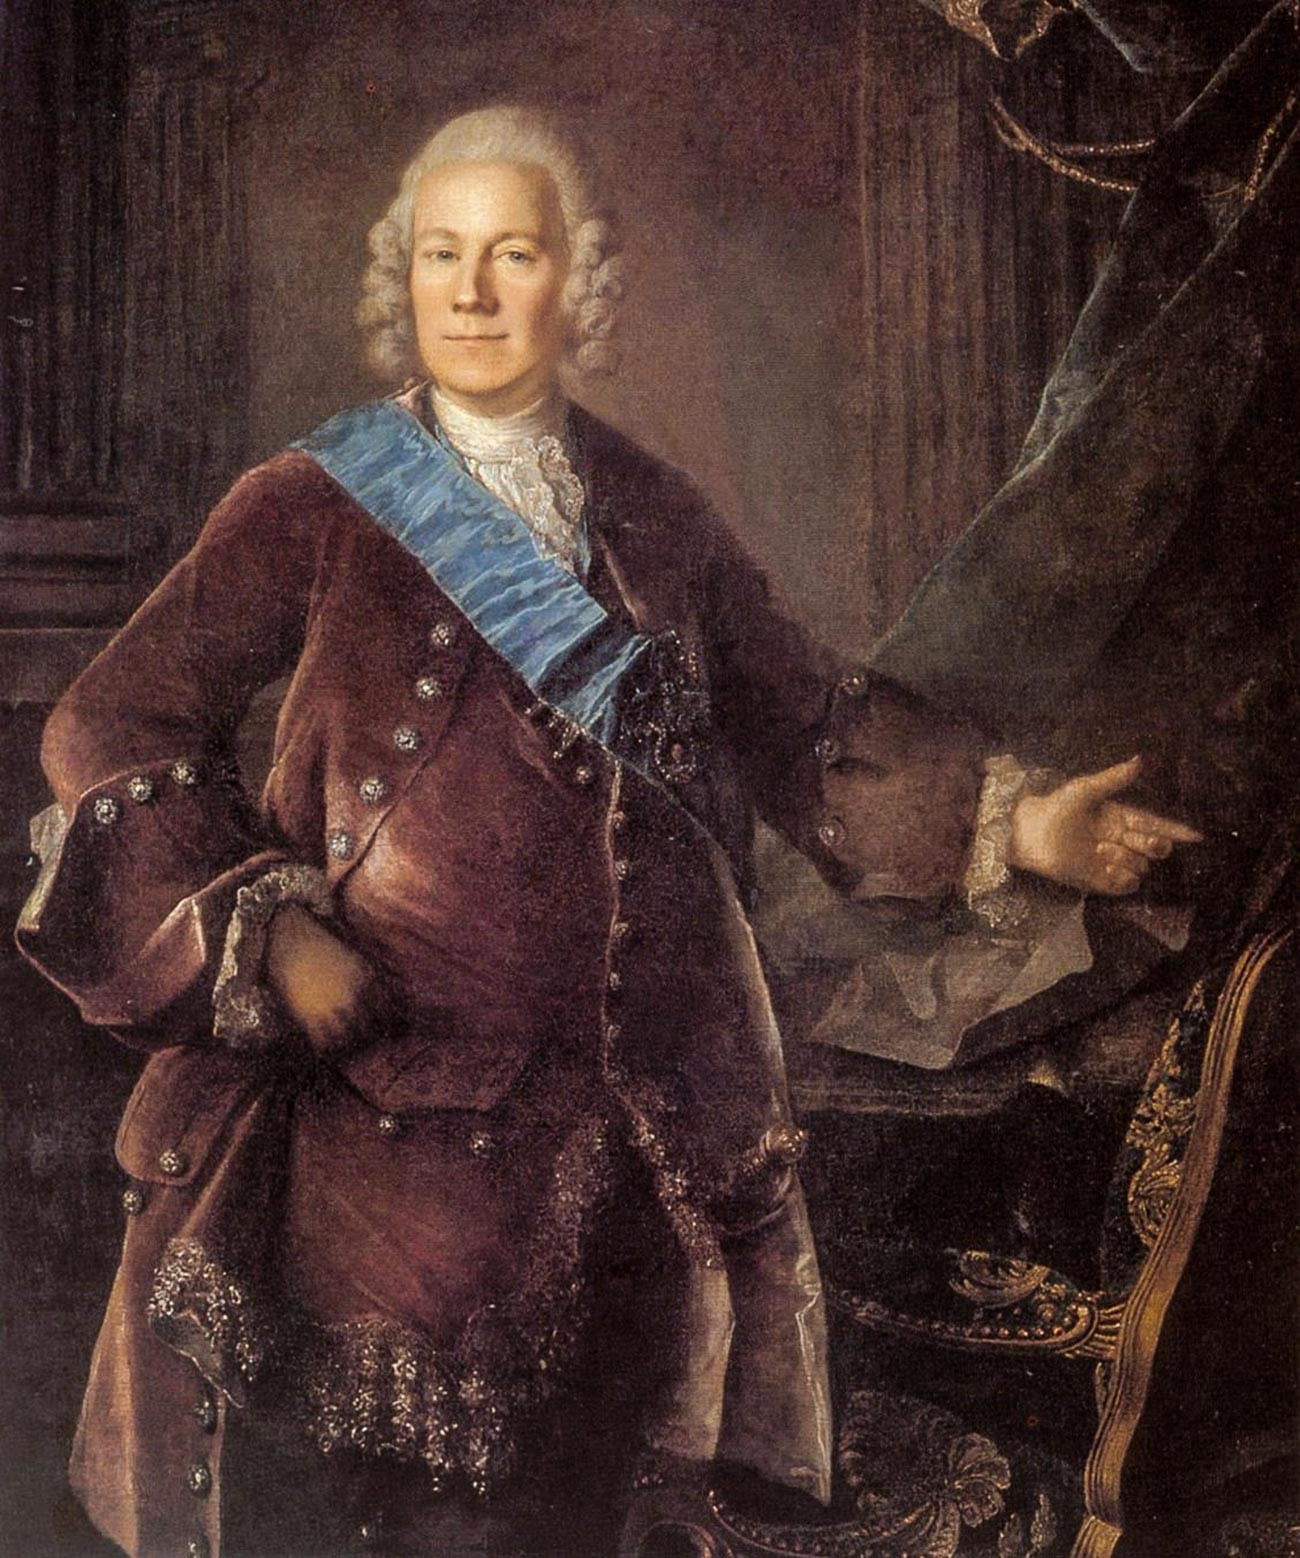 One of the most respected diplomats of the 18th century, Count Aleksey Bestuzhev-Ryumin.